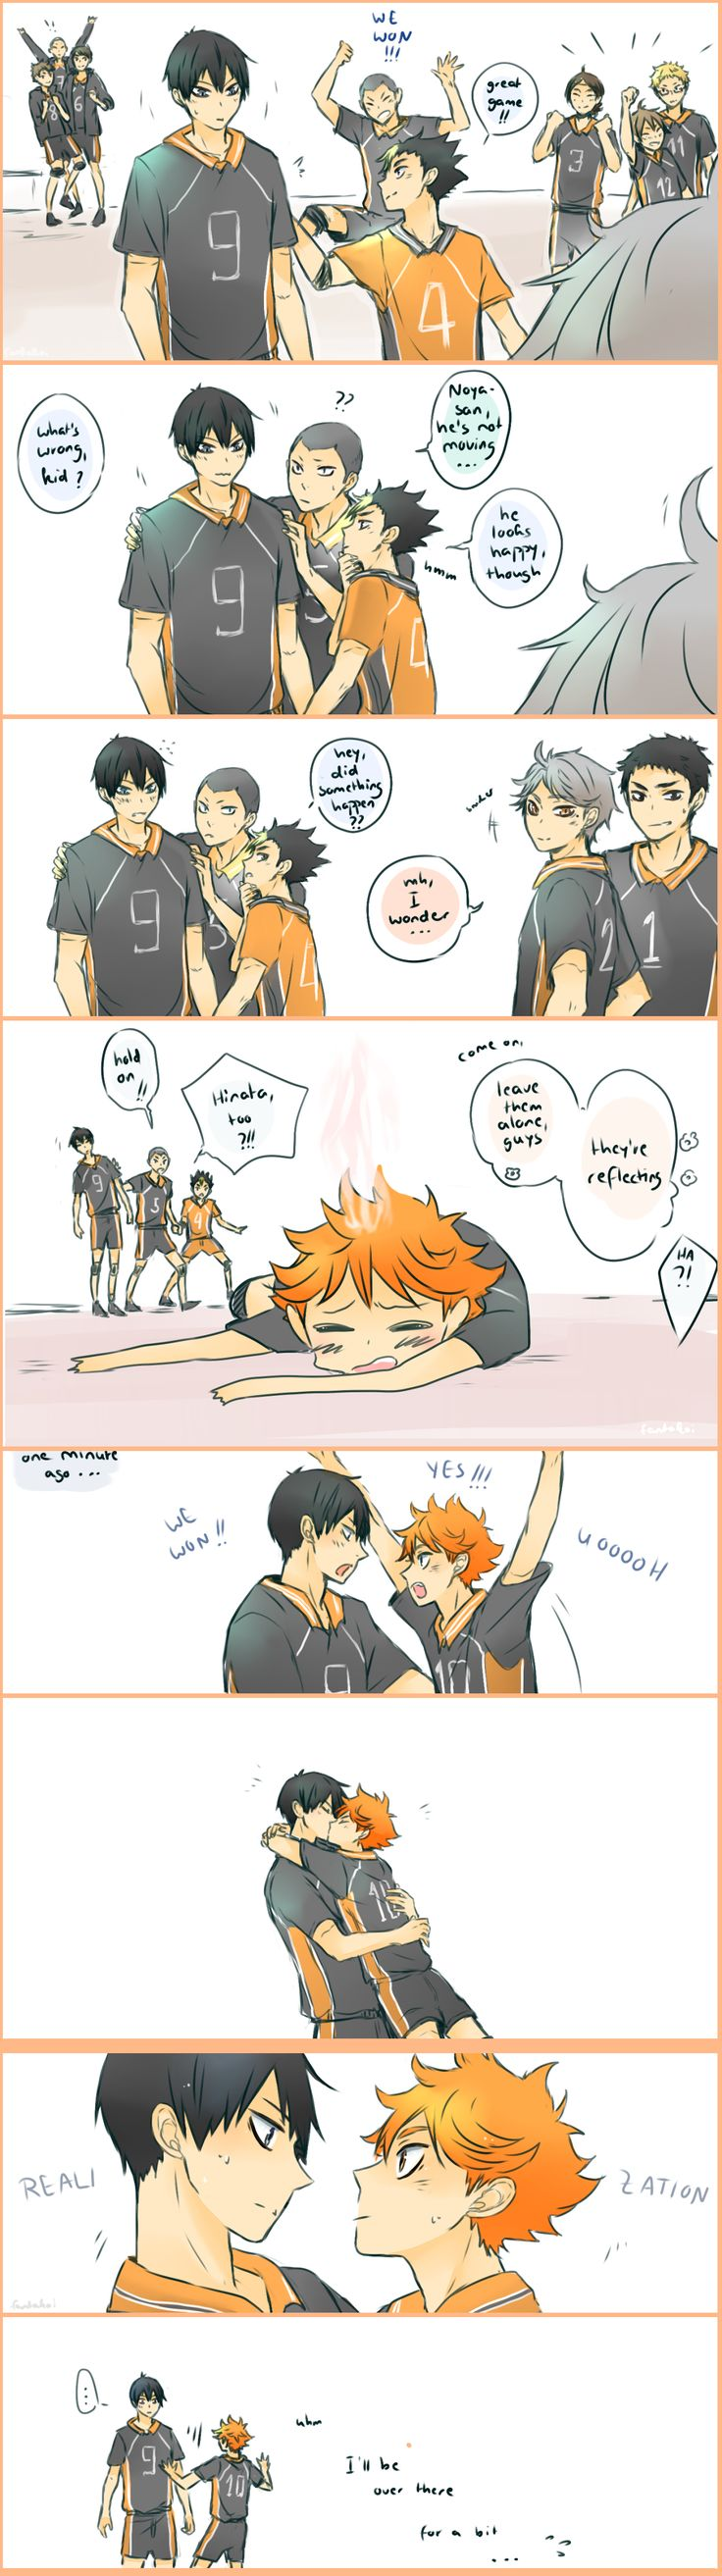 Kagehina Comic full #Kagehina #Kageyama #Tobio #Hinata #Shouyou #doujinshi #Sweet #love #adorable #cute #kawaii #couple #romantic #kiss #shounen #ai #yaoi #Haikyuu #volleyball #anime #manga #story